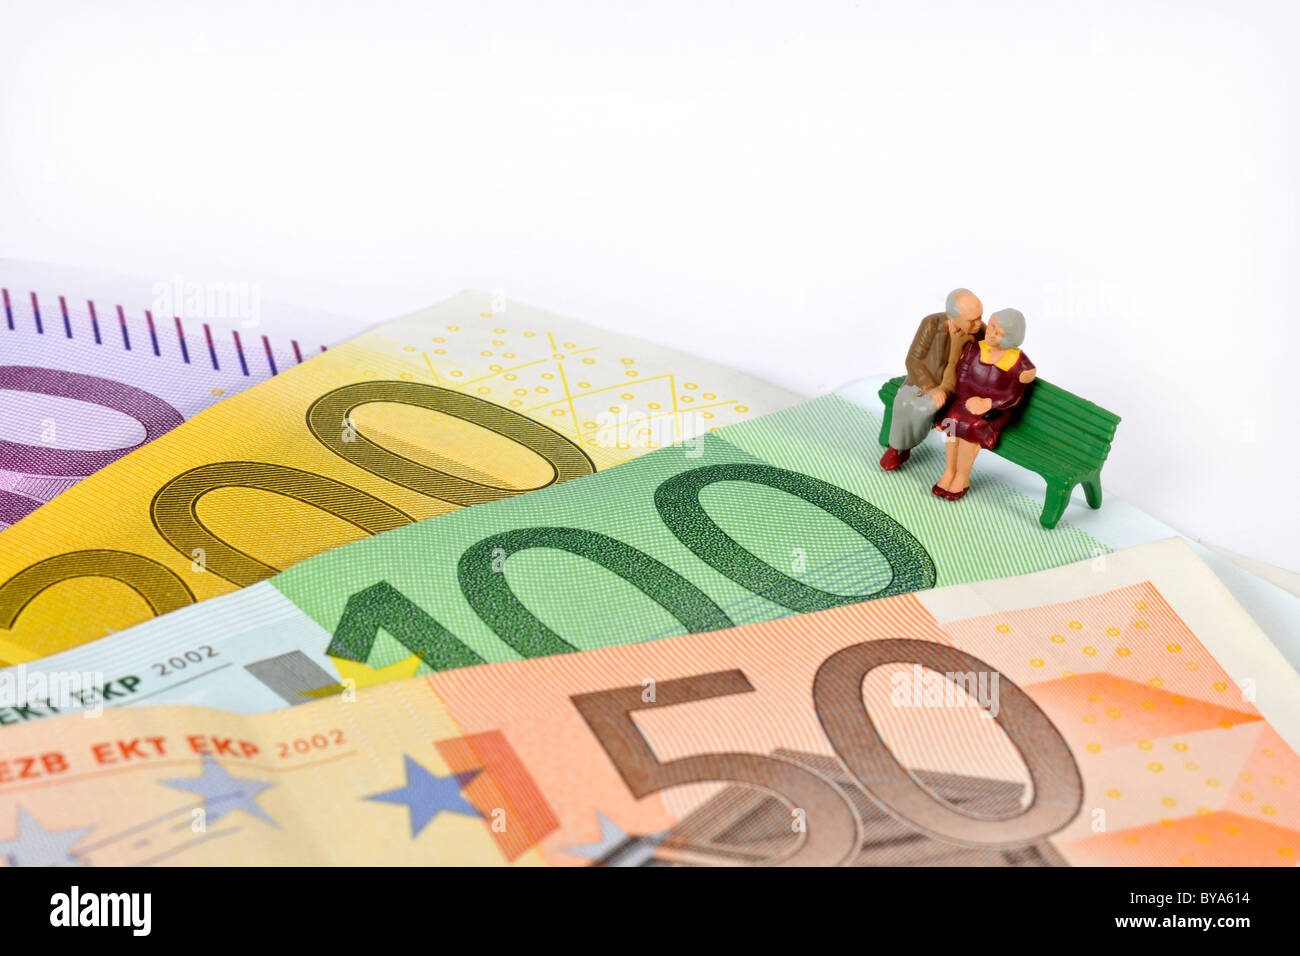 Figurines, pensioners sitting on a bench on euro banknotes, symbolic image for pension plan, pension - Stock Image